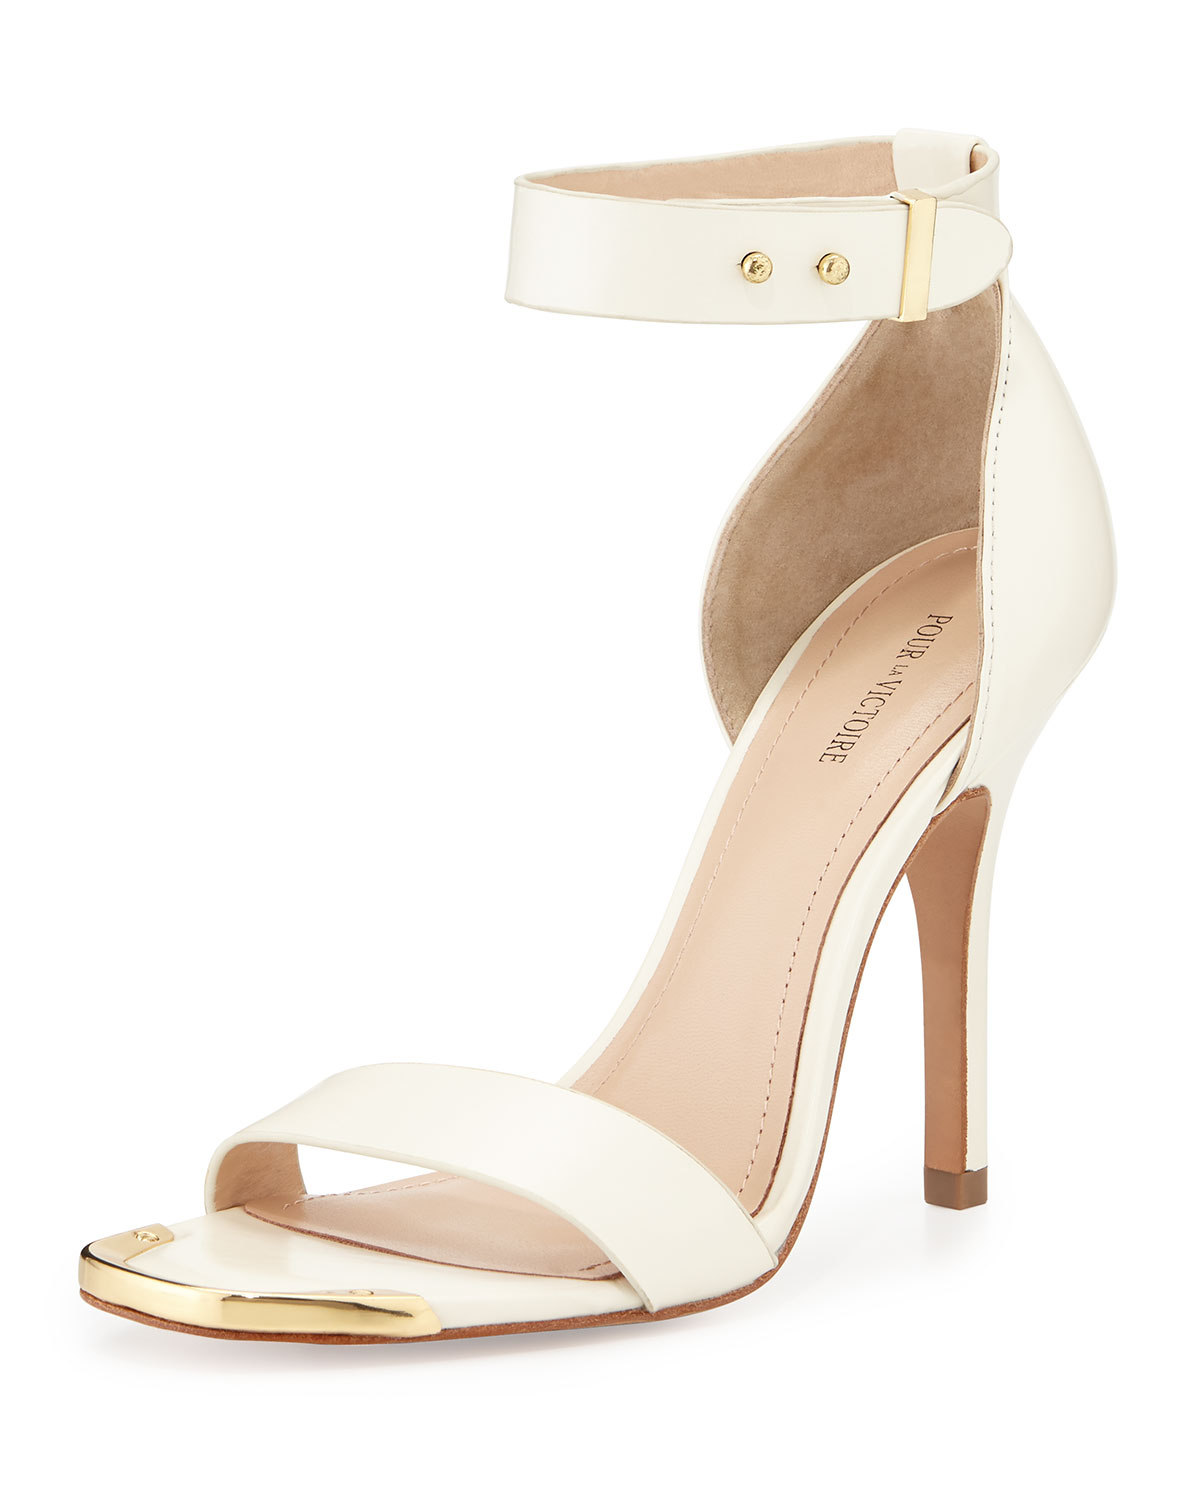 Yaya Leather Ankle-Wrap Sandal, Off White, Size: 36.5B/6.5B - Pour la Victoire